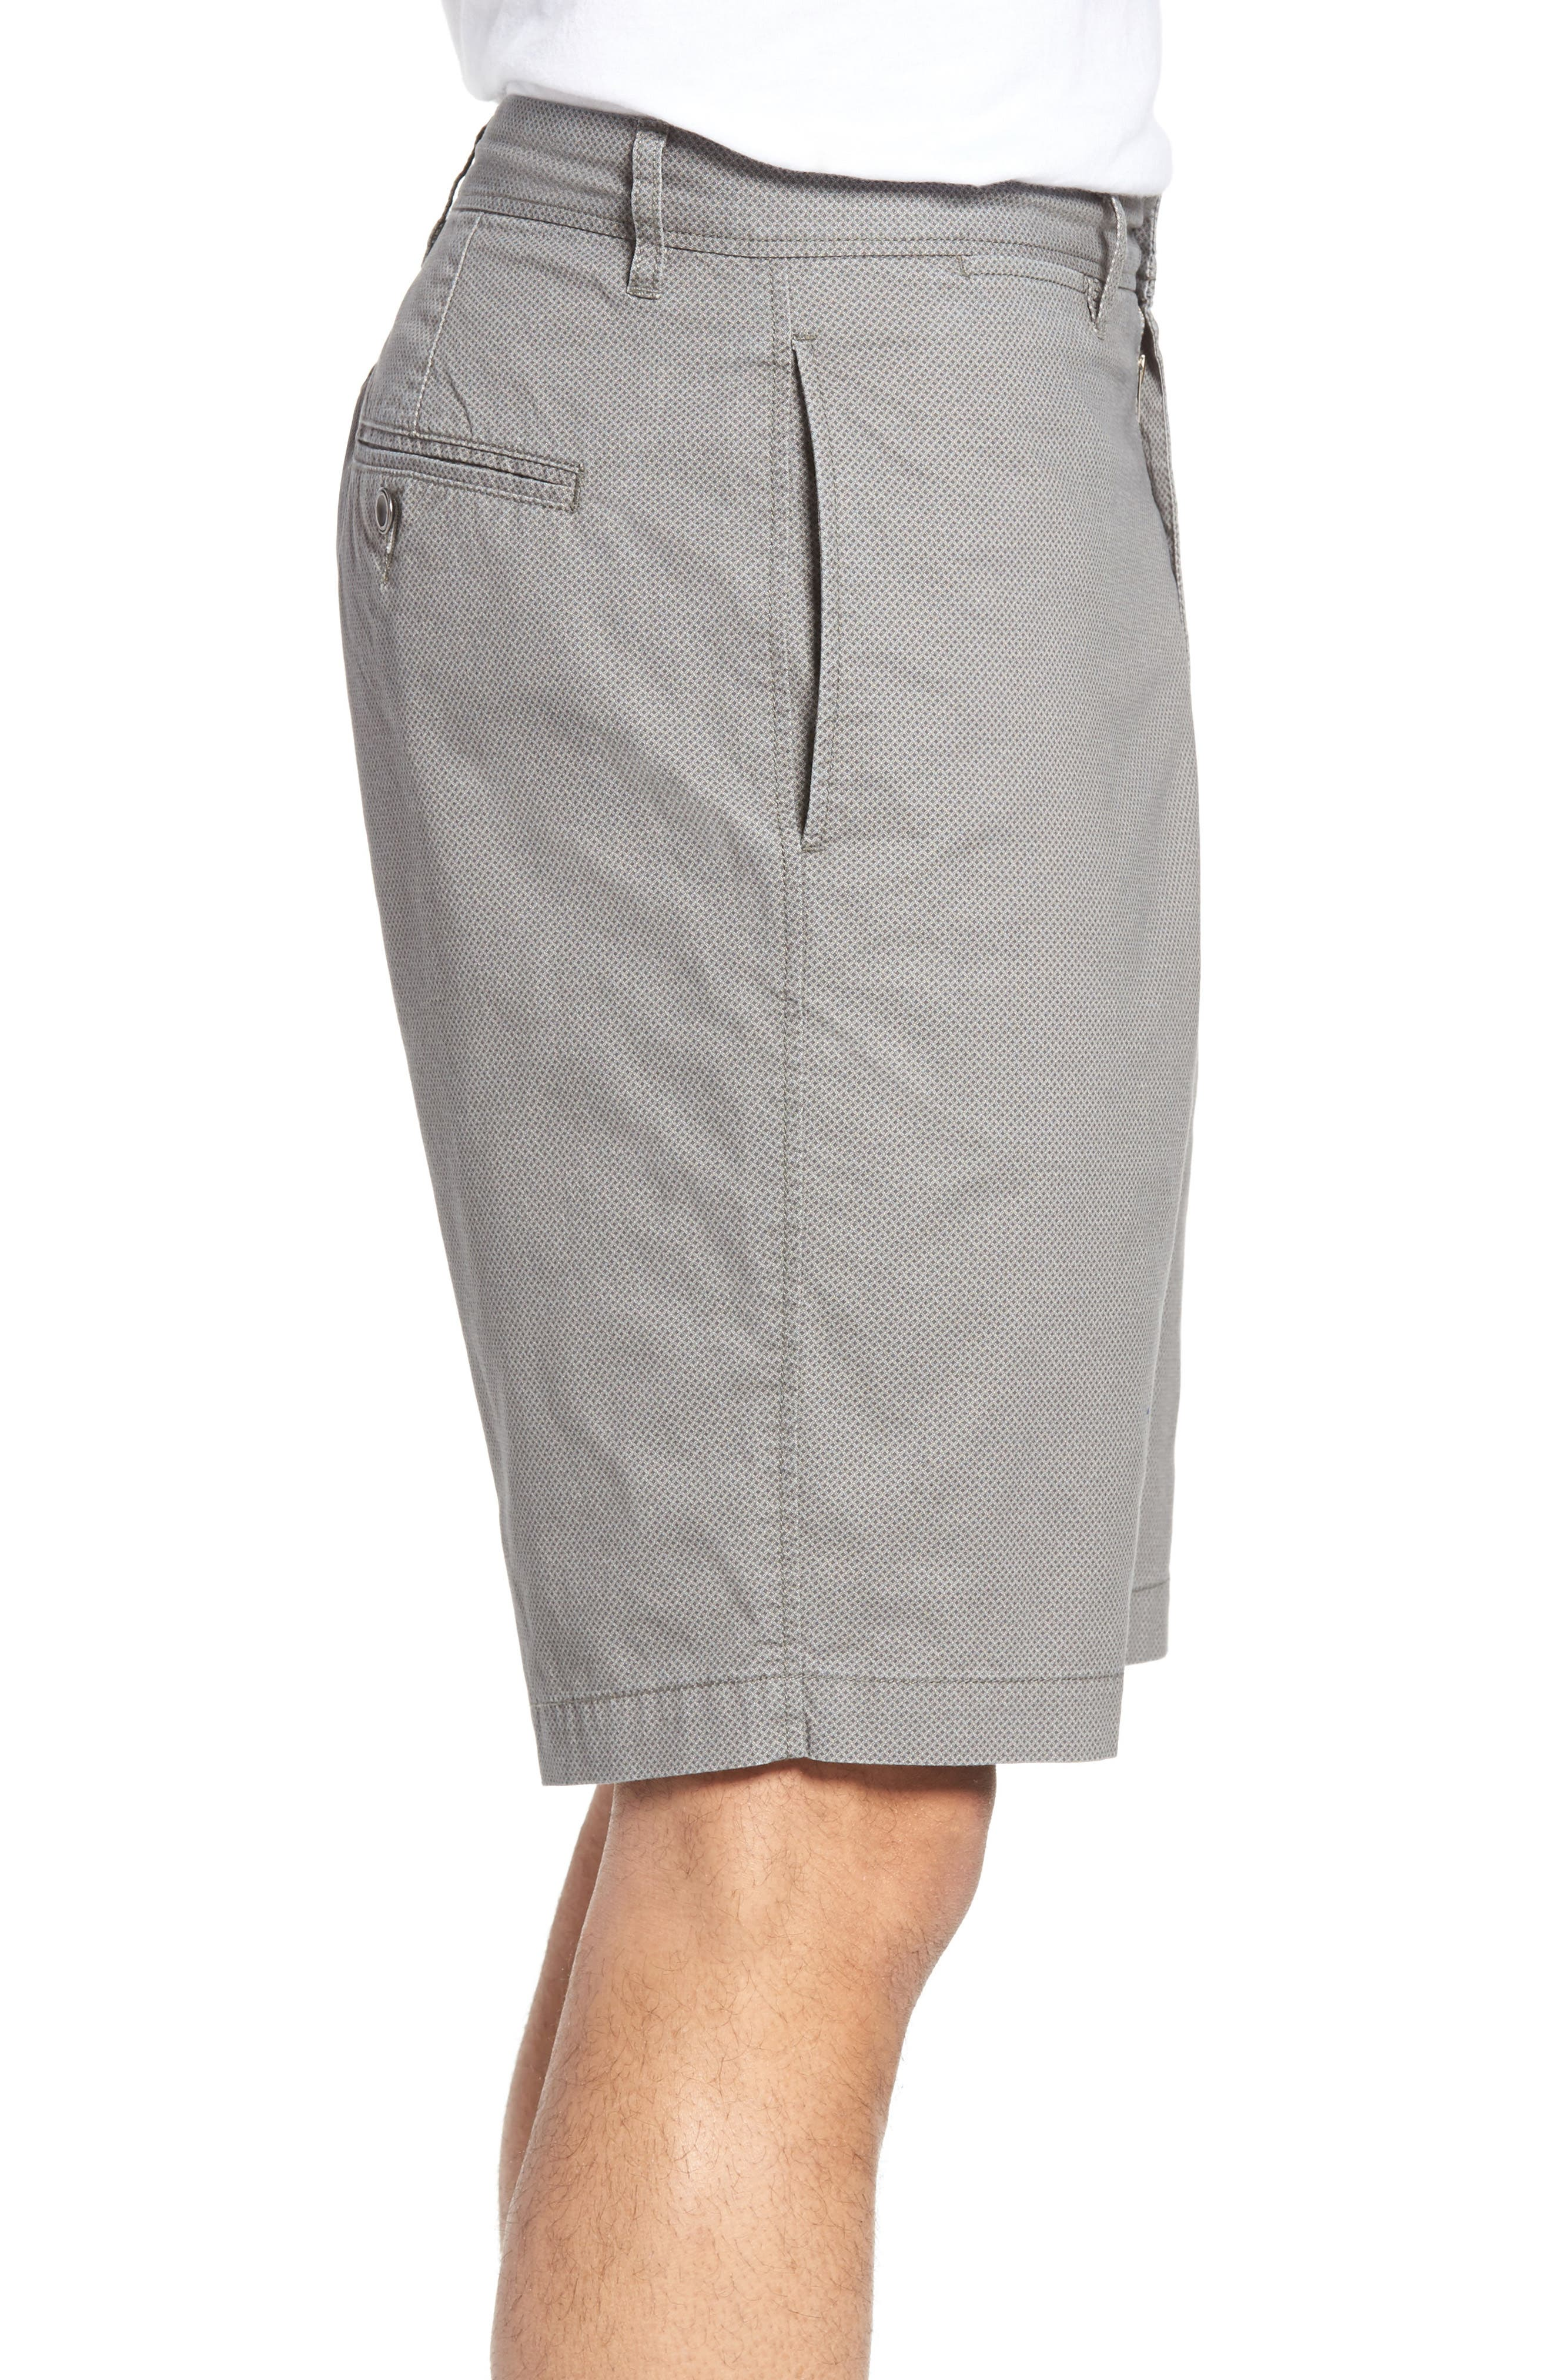 Benneydale Shorts,                             Alternate thumbnail 3, color,                             039